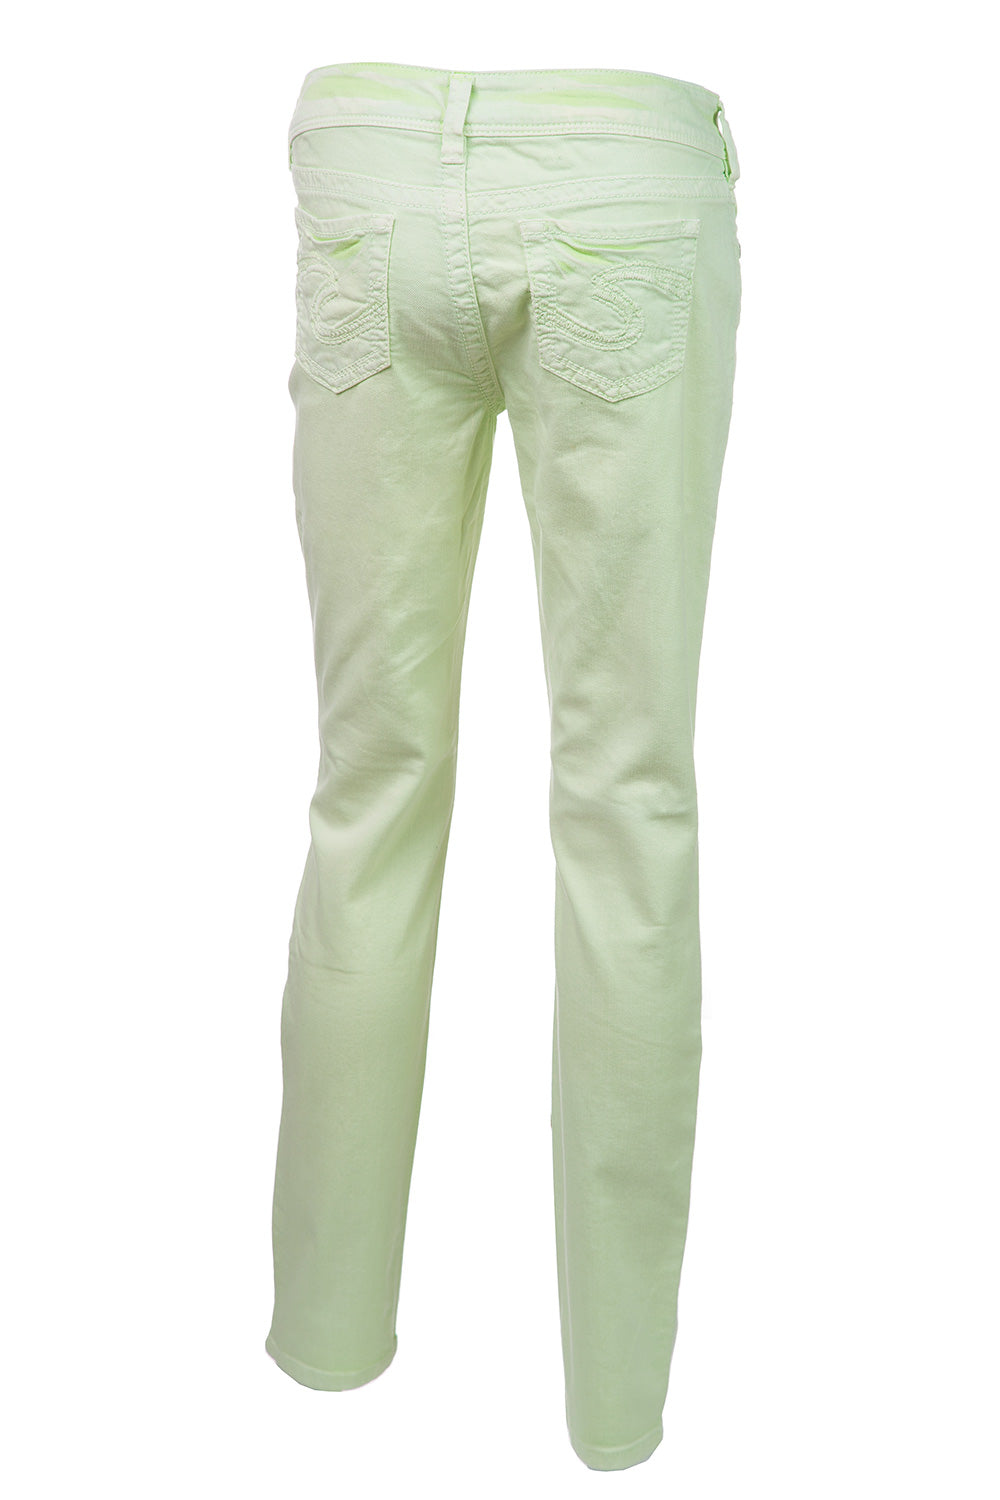 Type 1 Morning Stroll Pants in Green